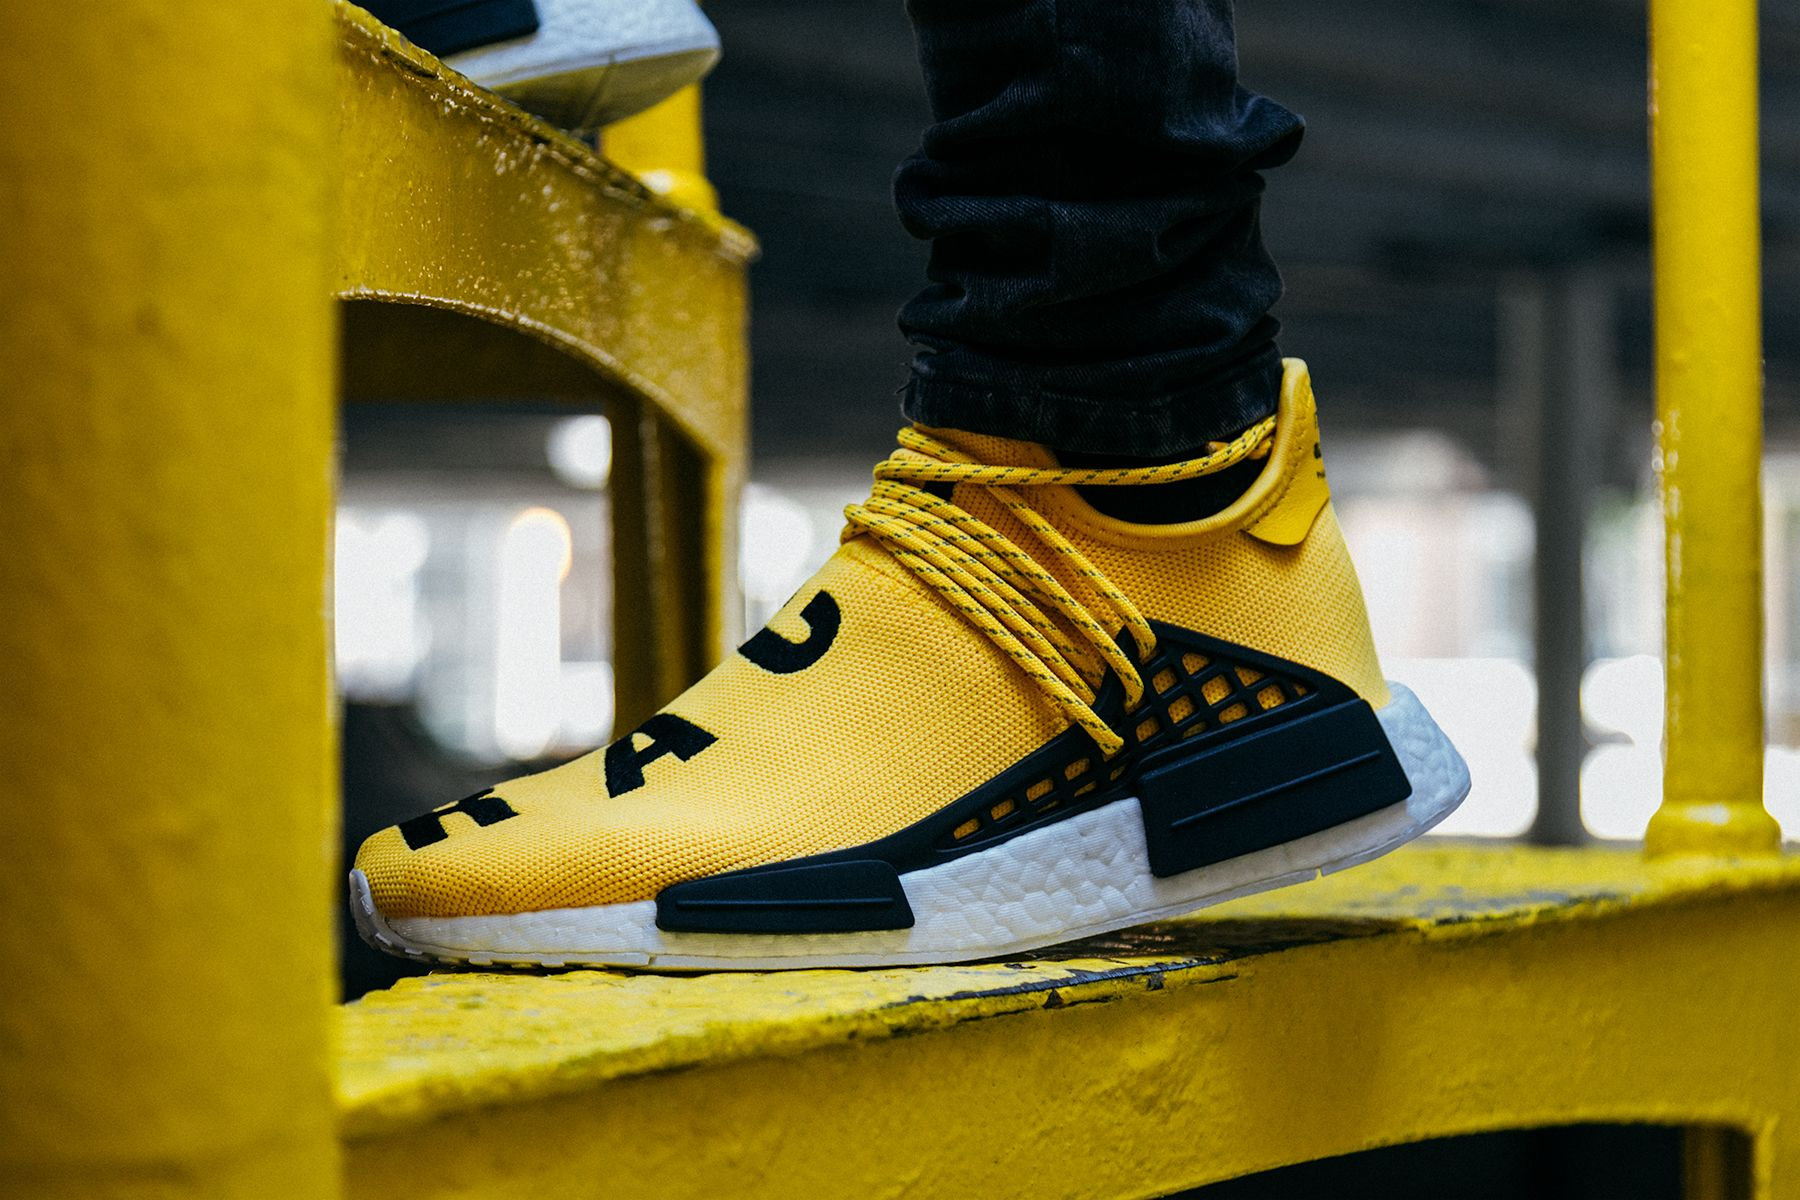 finest selection 2212c 104ed Another On-Feet Look At The Pharrell x adidas NMD Human Race •  KicksOnFire.com